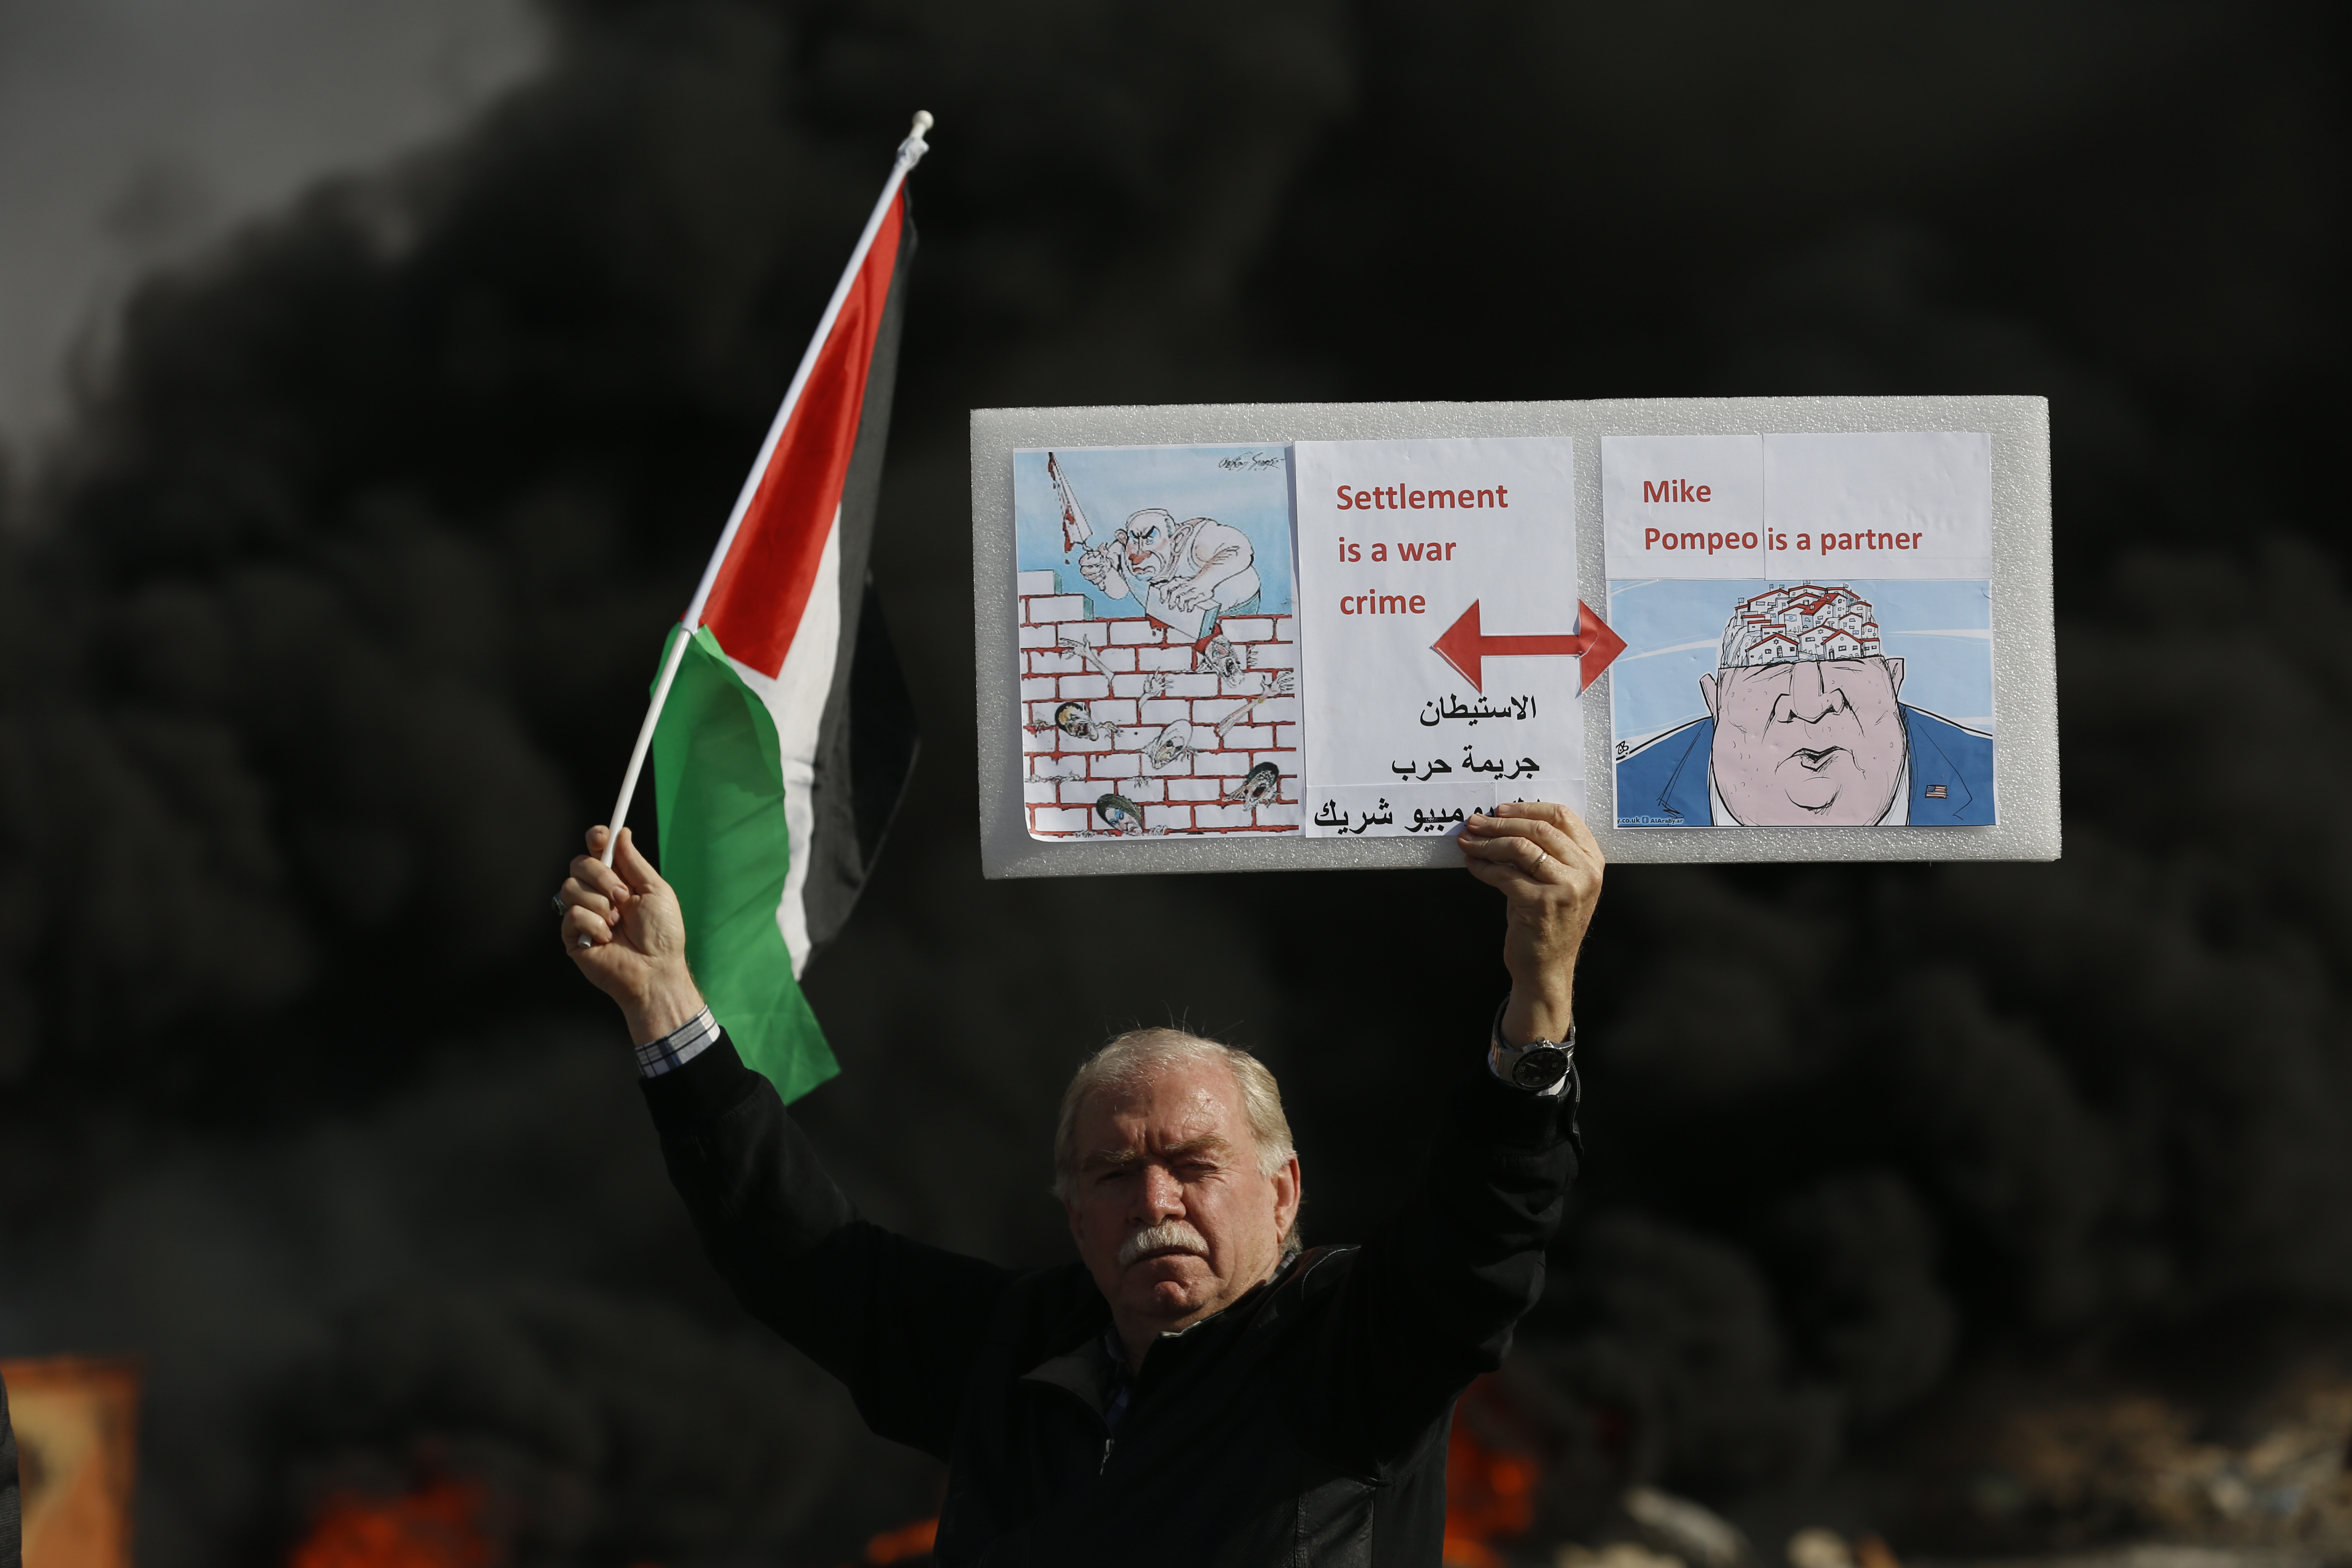 A Palestinian holds a poster depicting Israeli Prime Minister Benjamin Netanyahu, left, and U.S. Secretary of State Mike Pompeo as clashes with Israeli troops broke out during the protest against the U.S. announcement that it no longer believes Israeli settlements violate international law., at checkpoint Beit El near the West Bank city of Ramallah on Nov. 26, 2019.